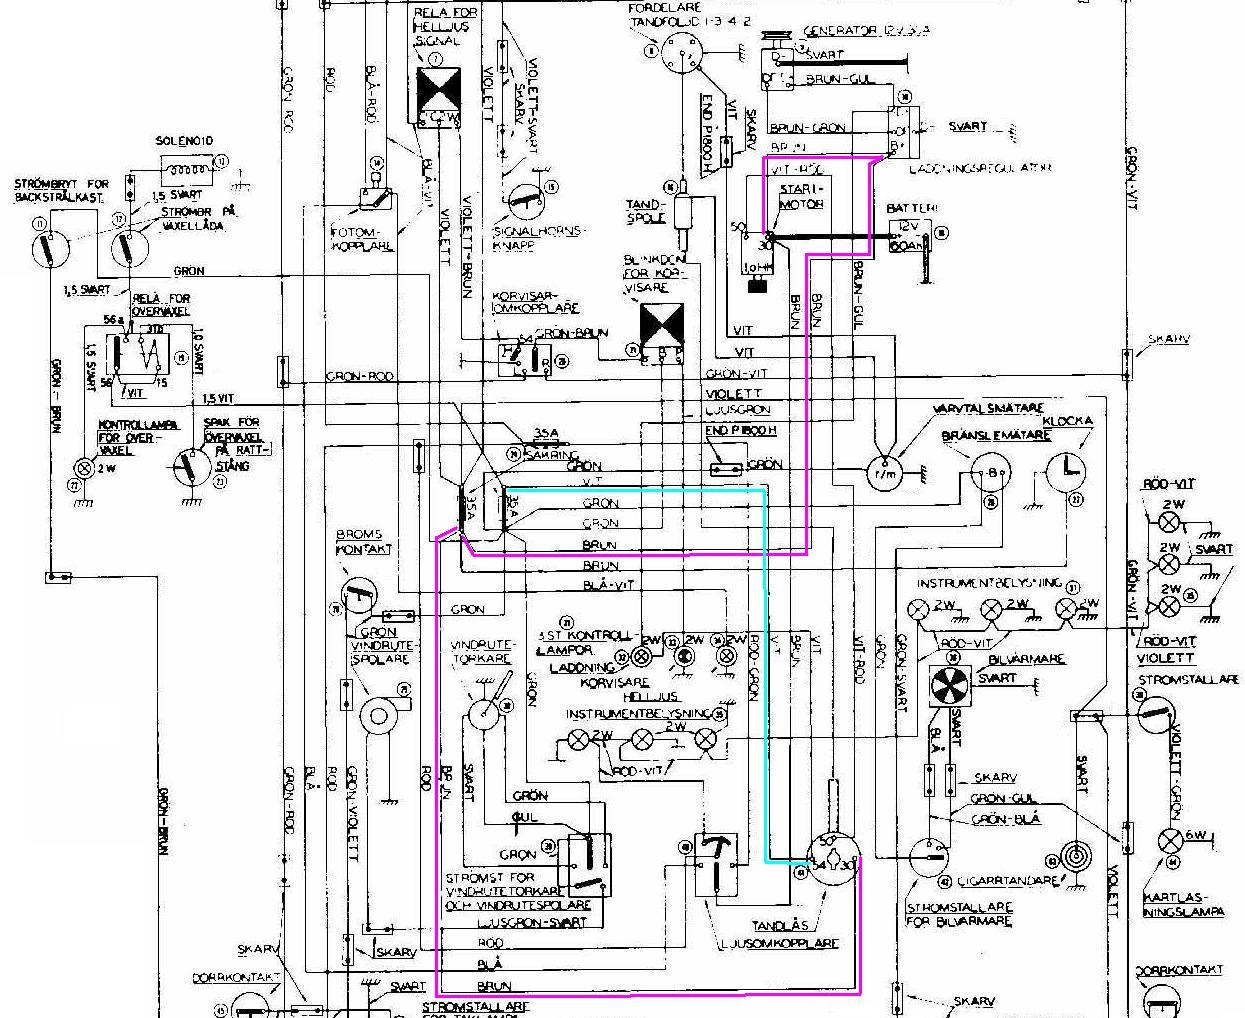 1800 Wiring Diagram marked up 1800 ignition wiring swedish vs british design volvo amazon wiring diagram at fashall.co